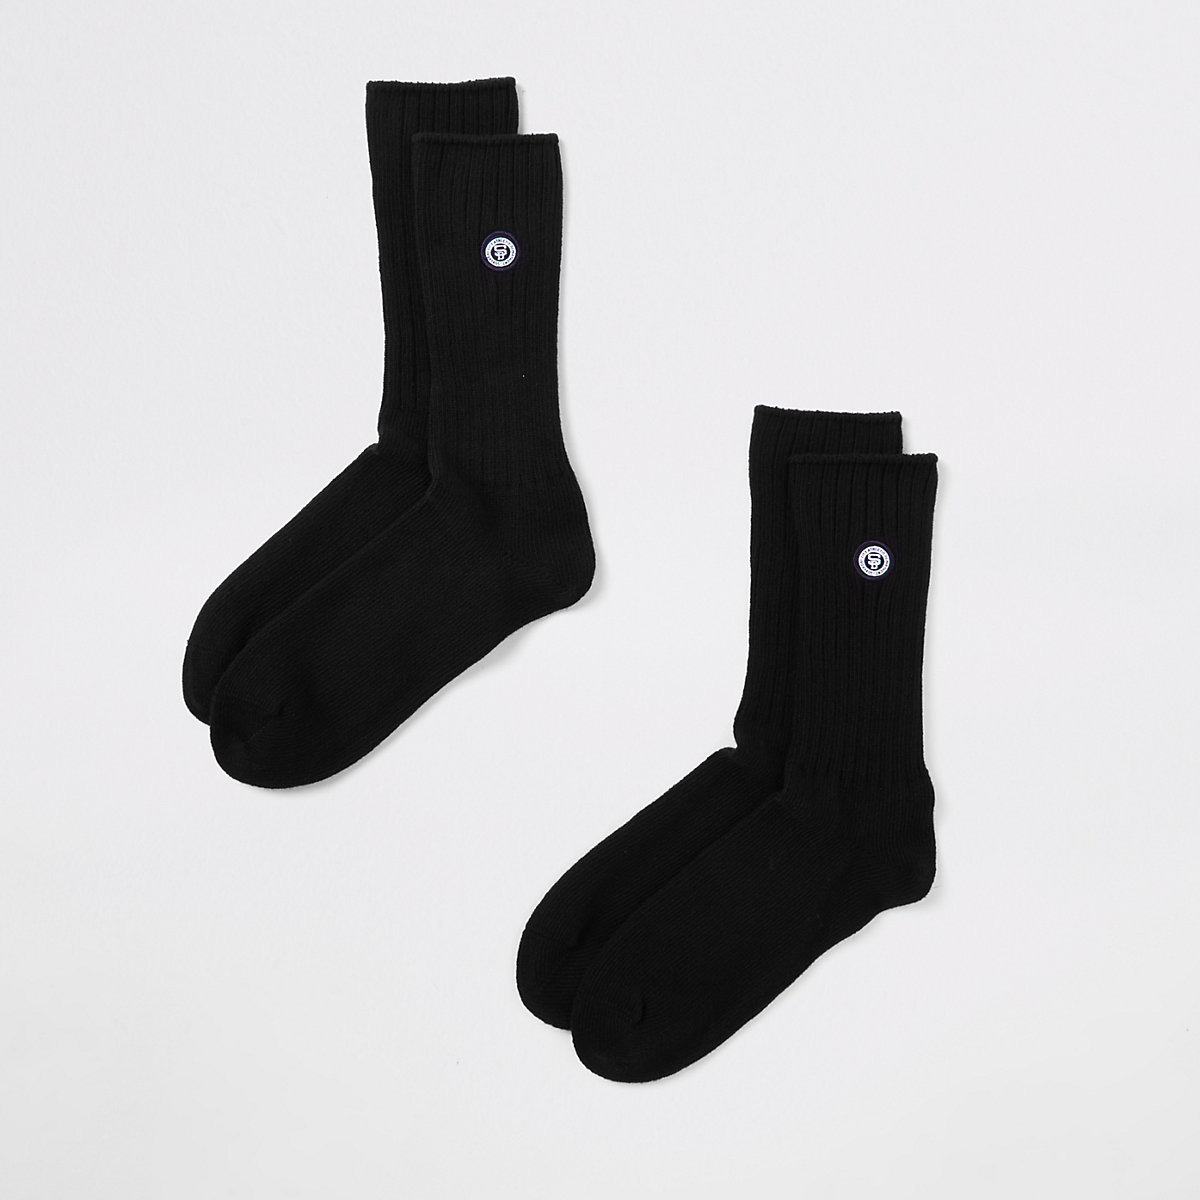 Superdry University black socks multipack